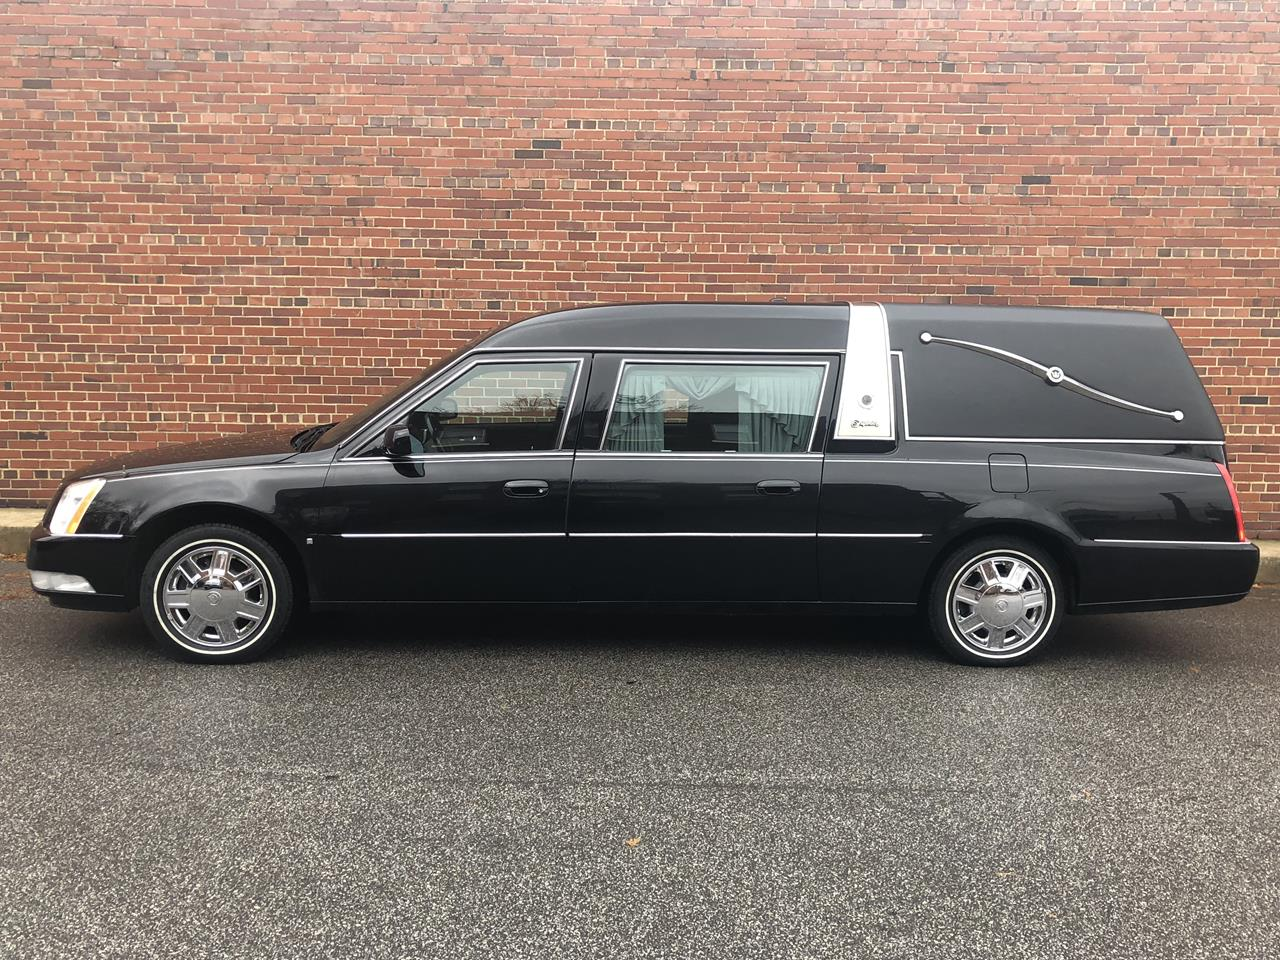 2006 Cadillac Superior Crown Sovereign Hearse 93 17